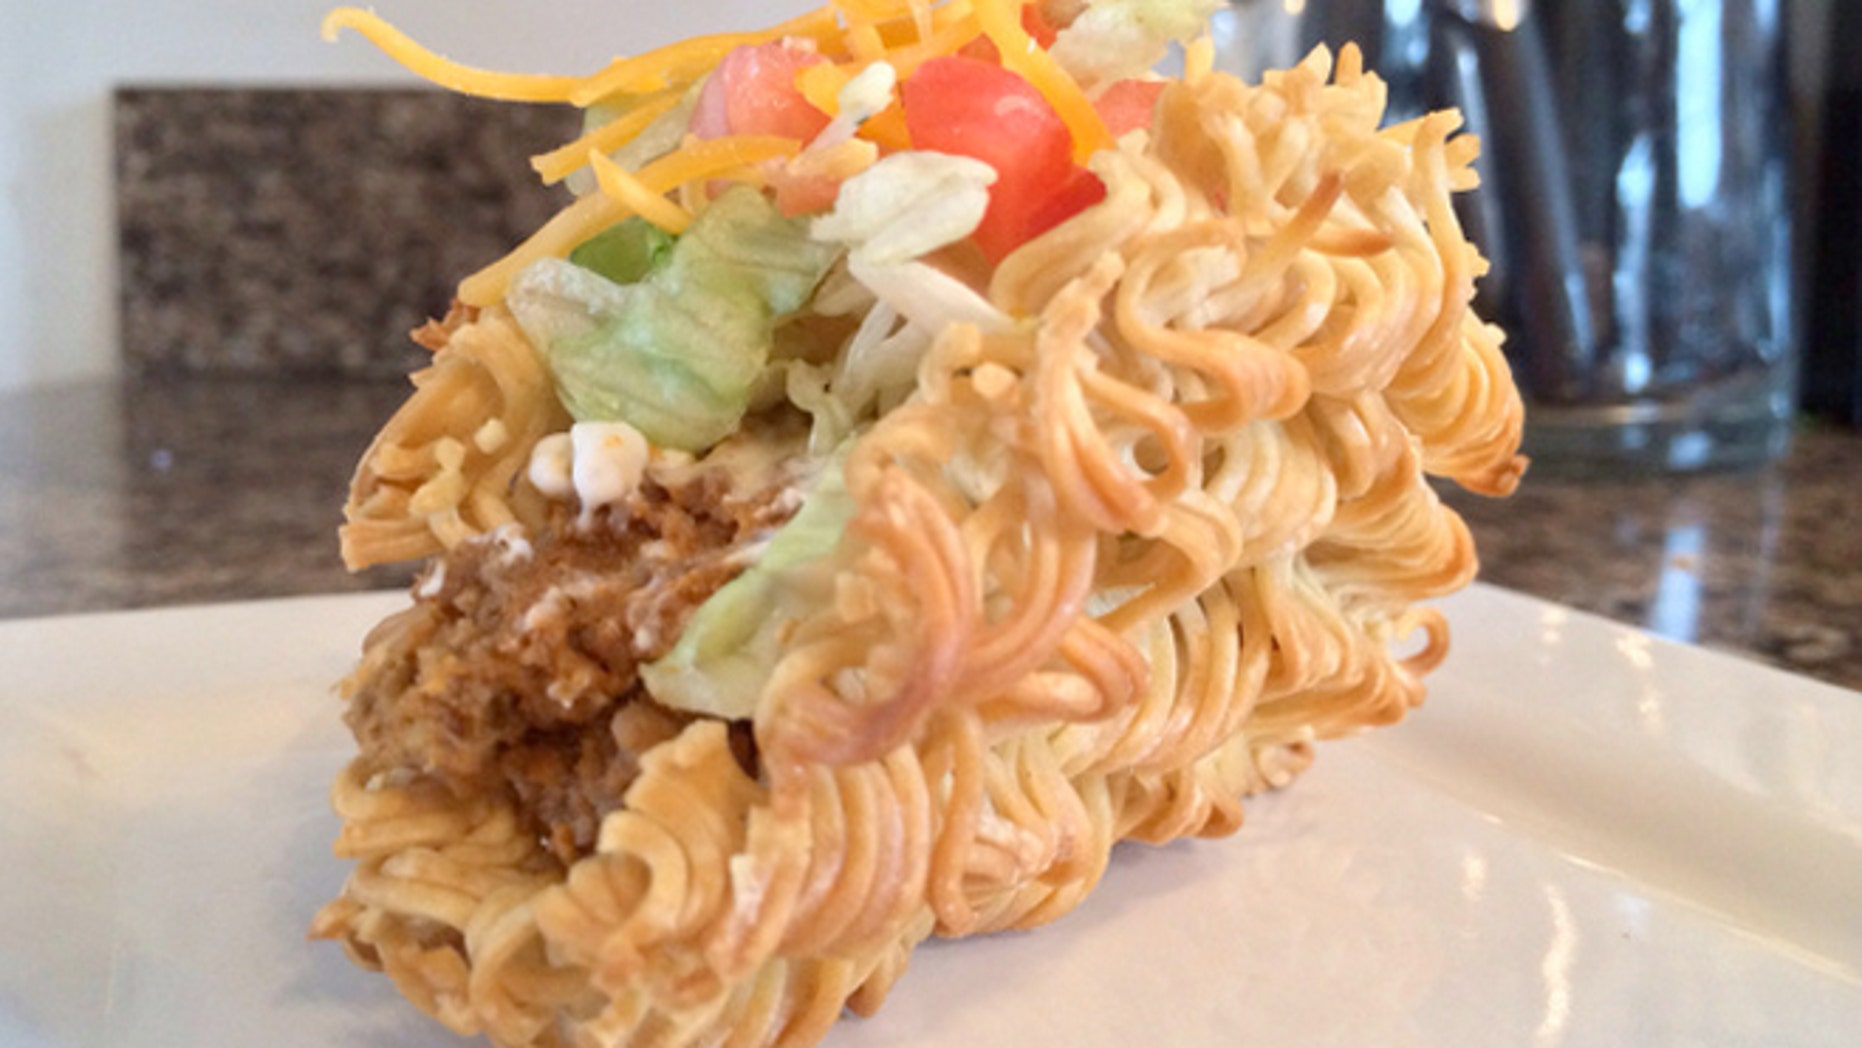 The ramen taco has a ramen noodle shell filled with beef, lettuce, tomatoes, cheese, and sour cream.